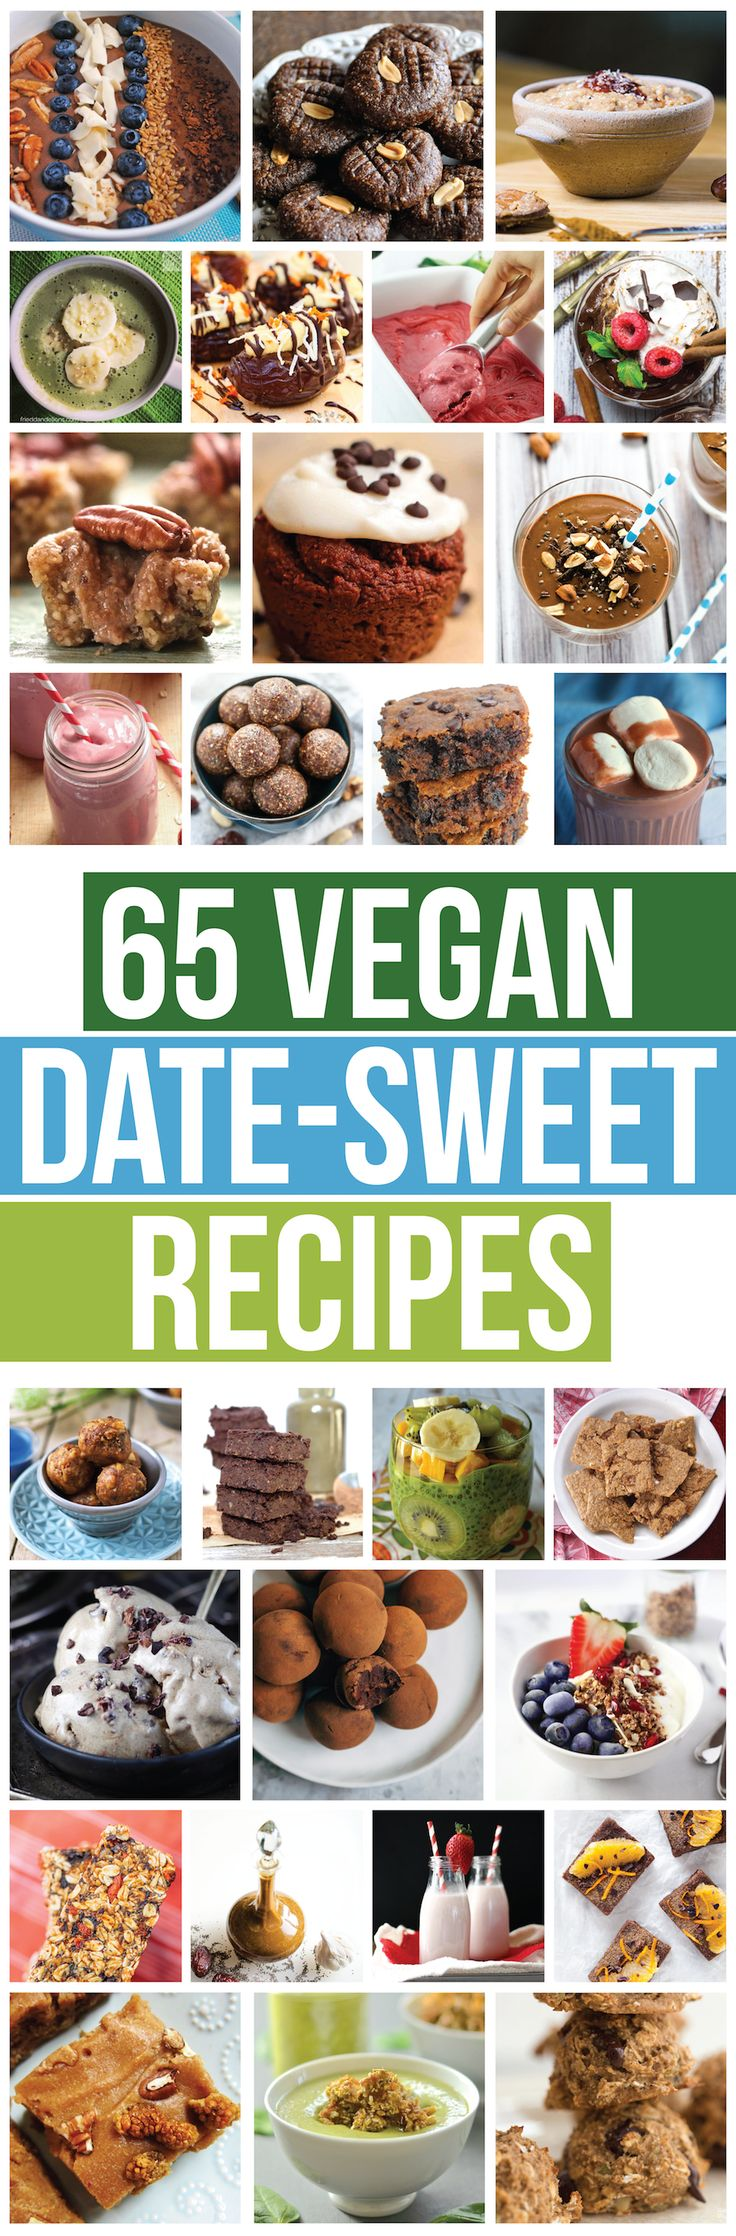 The Ultimate Vegan Date-Sweetened Roundup (65 recipes!)